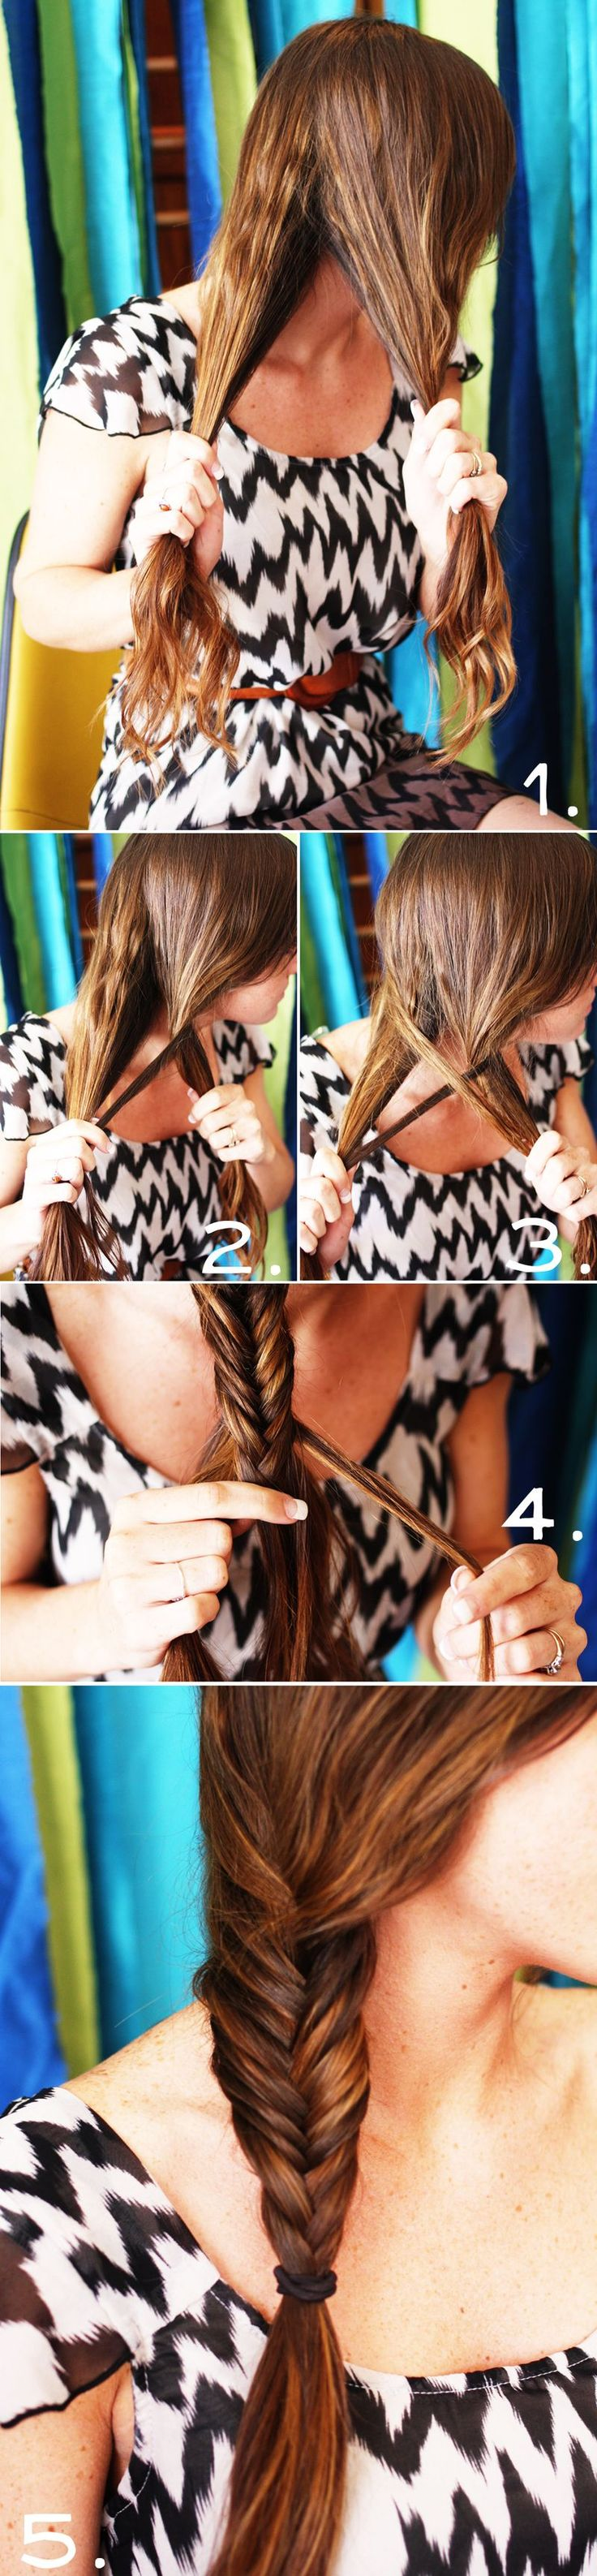 fishtail braidHairstyles, Fishtail Hair, Summer Hair, Makeup, Long Hair, Fish Tail Braid, Hair Style, Fishtail Braids Tutorials, Side Braids